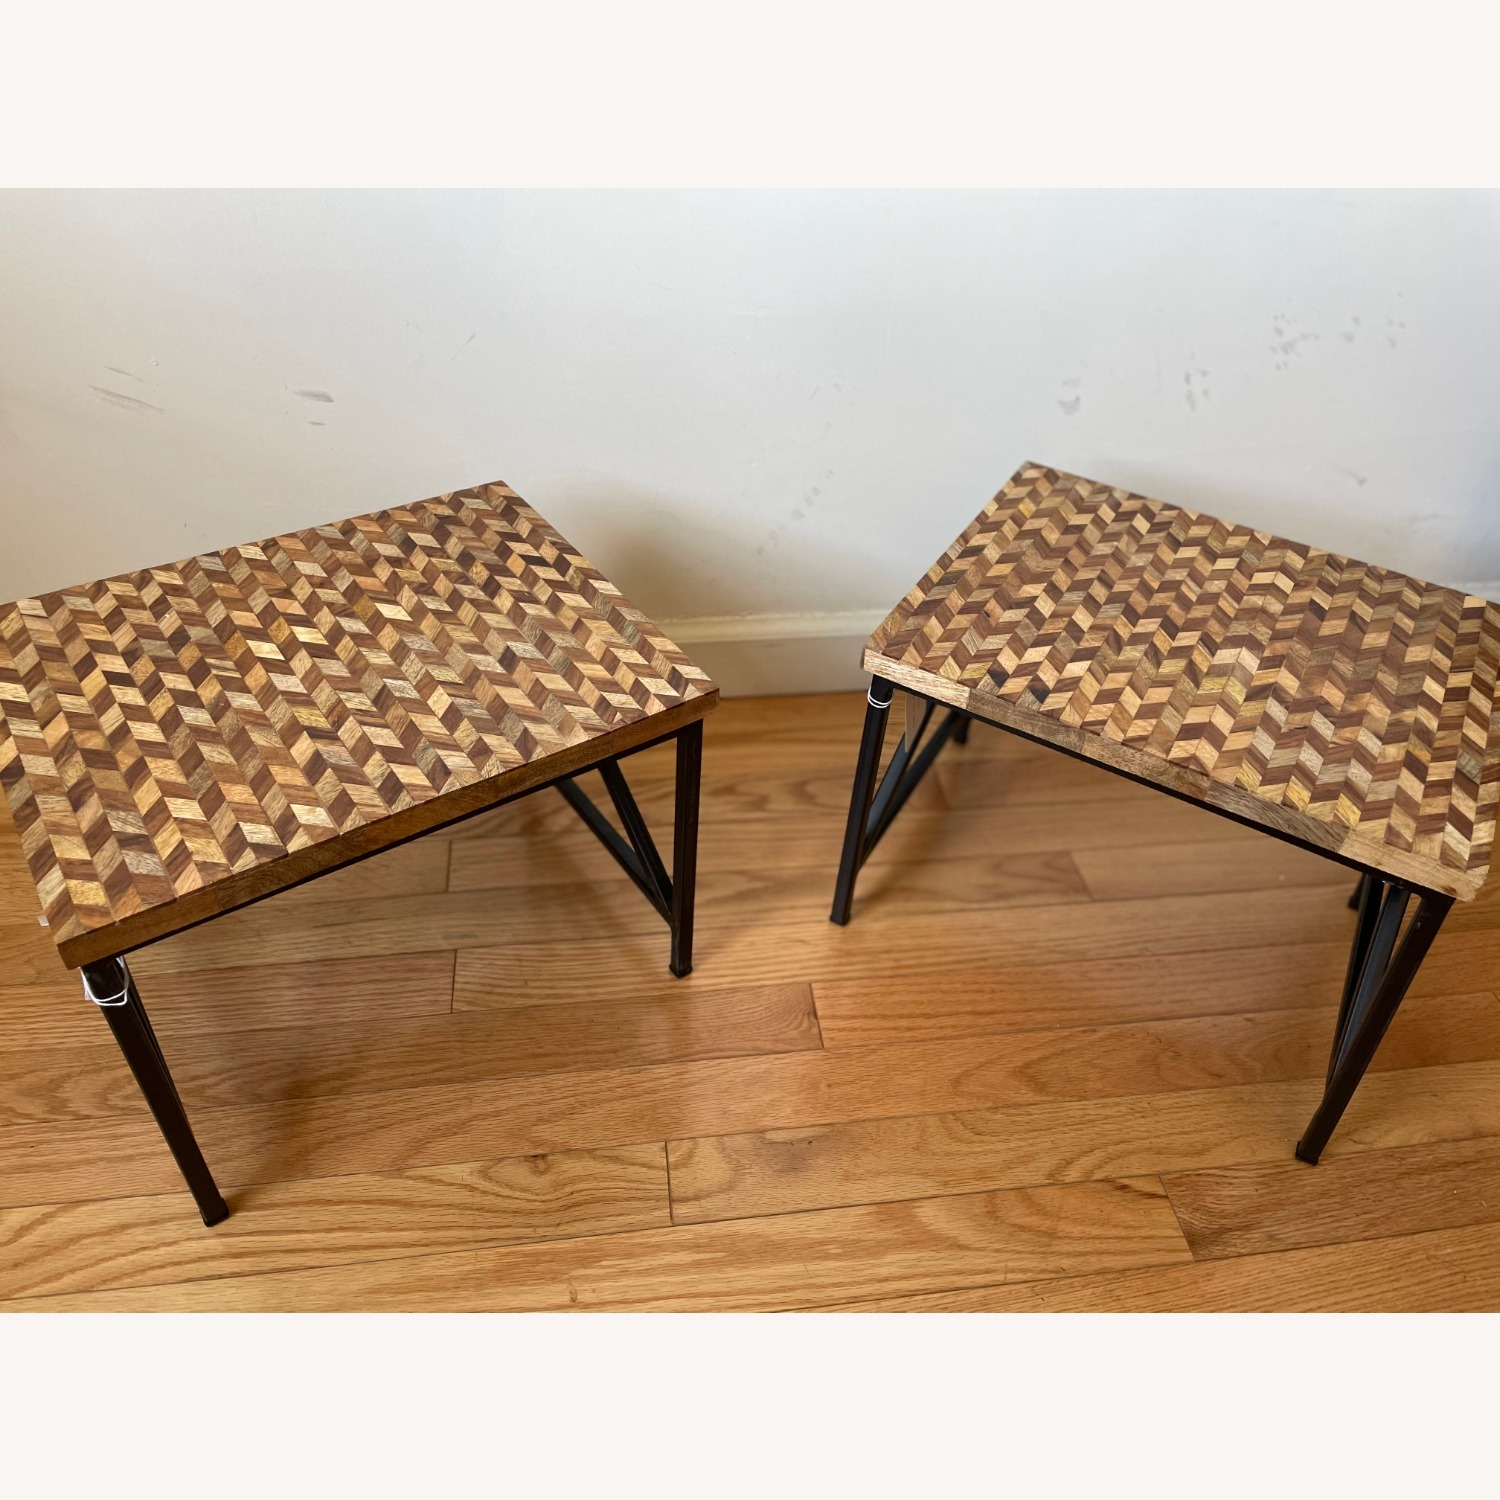 Pair of Industrial Wooden End Tables - image-1